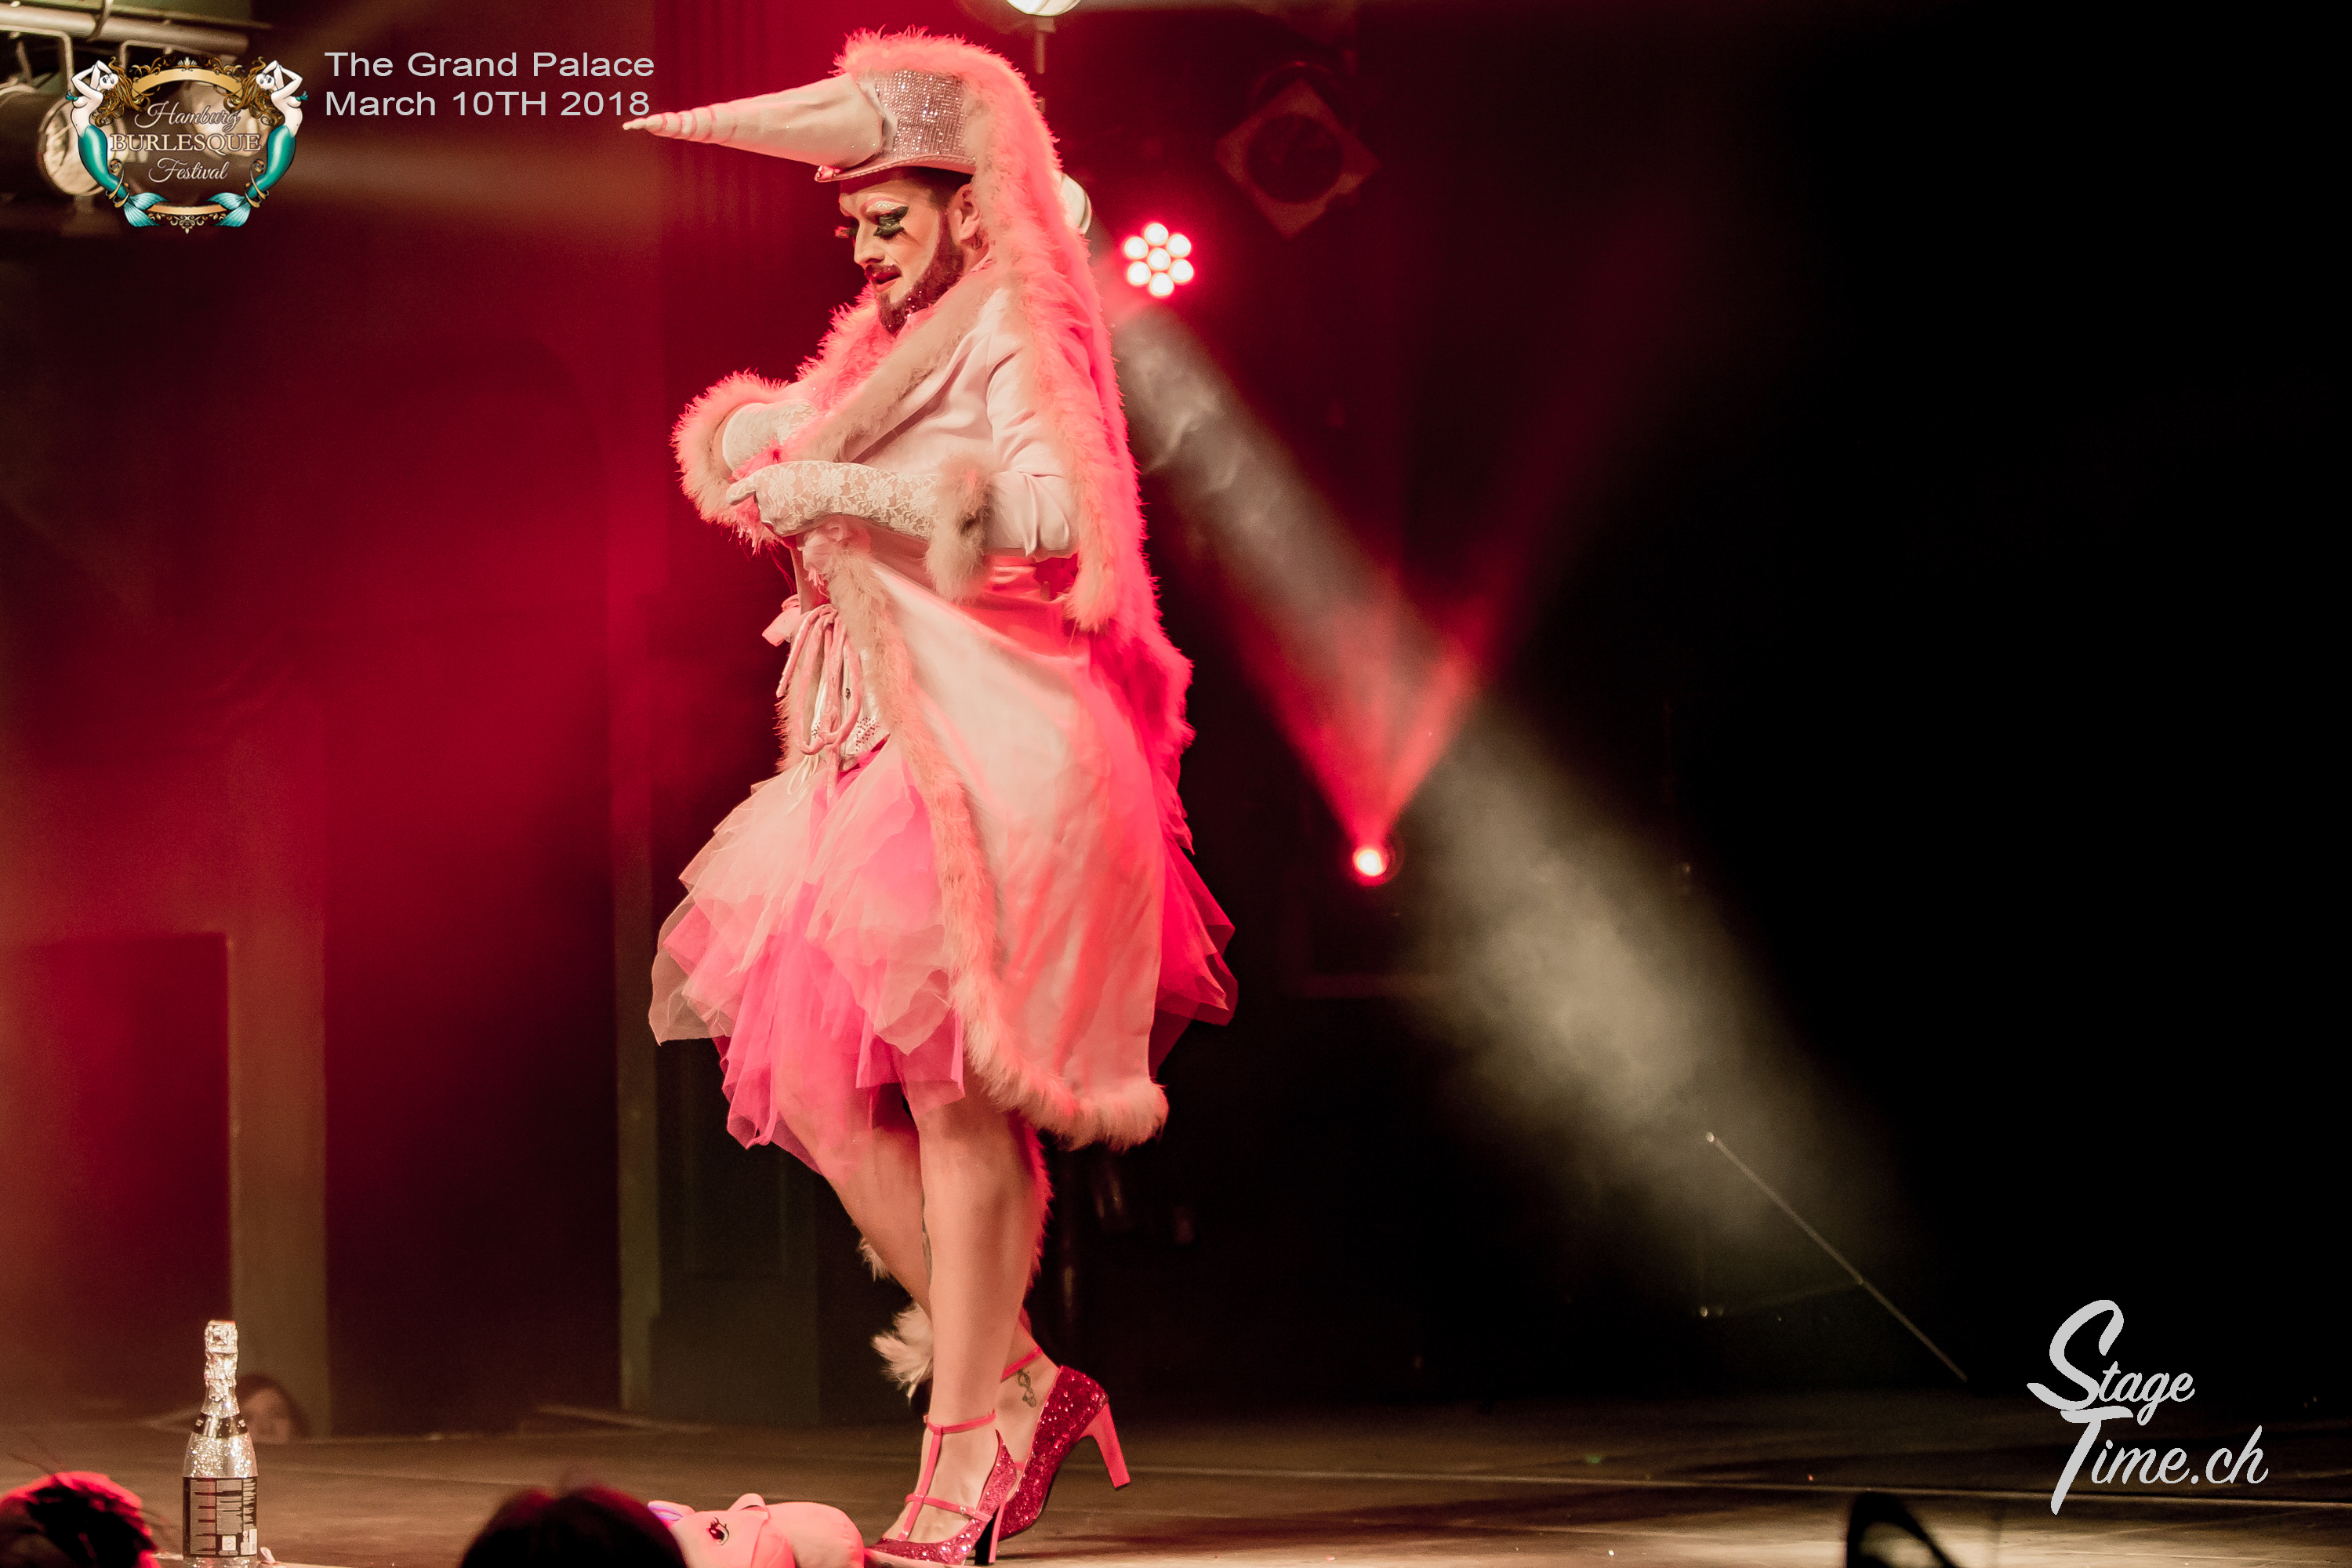 Hamburg_Burlesque_Festival_The_Grand_Palace__📷_Christoph_Gurtner_I_stagetime.ch-56